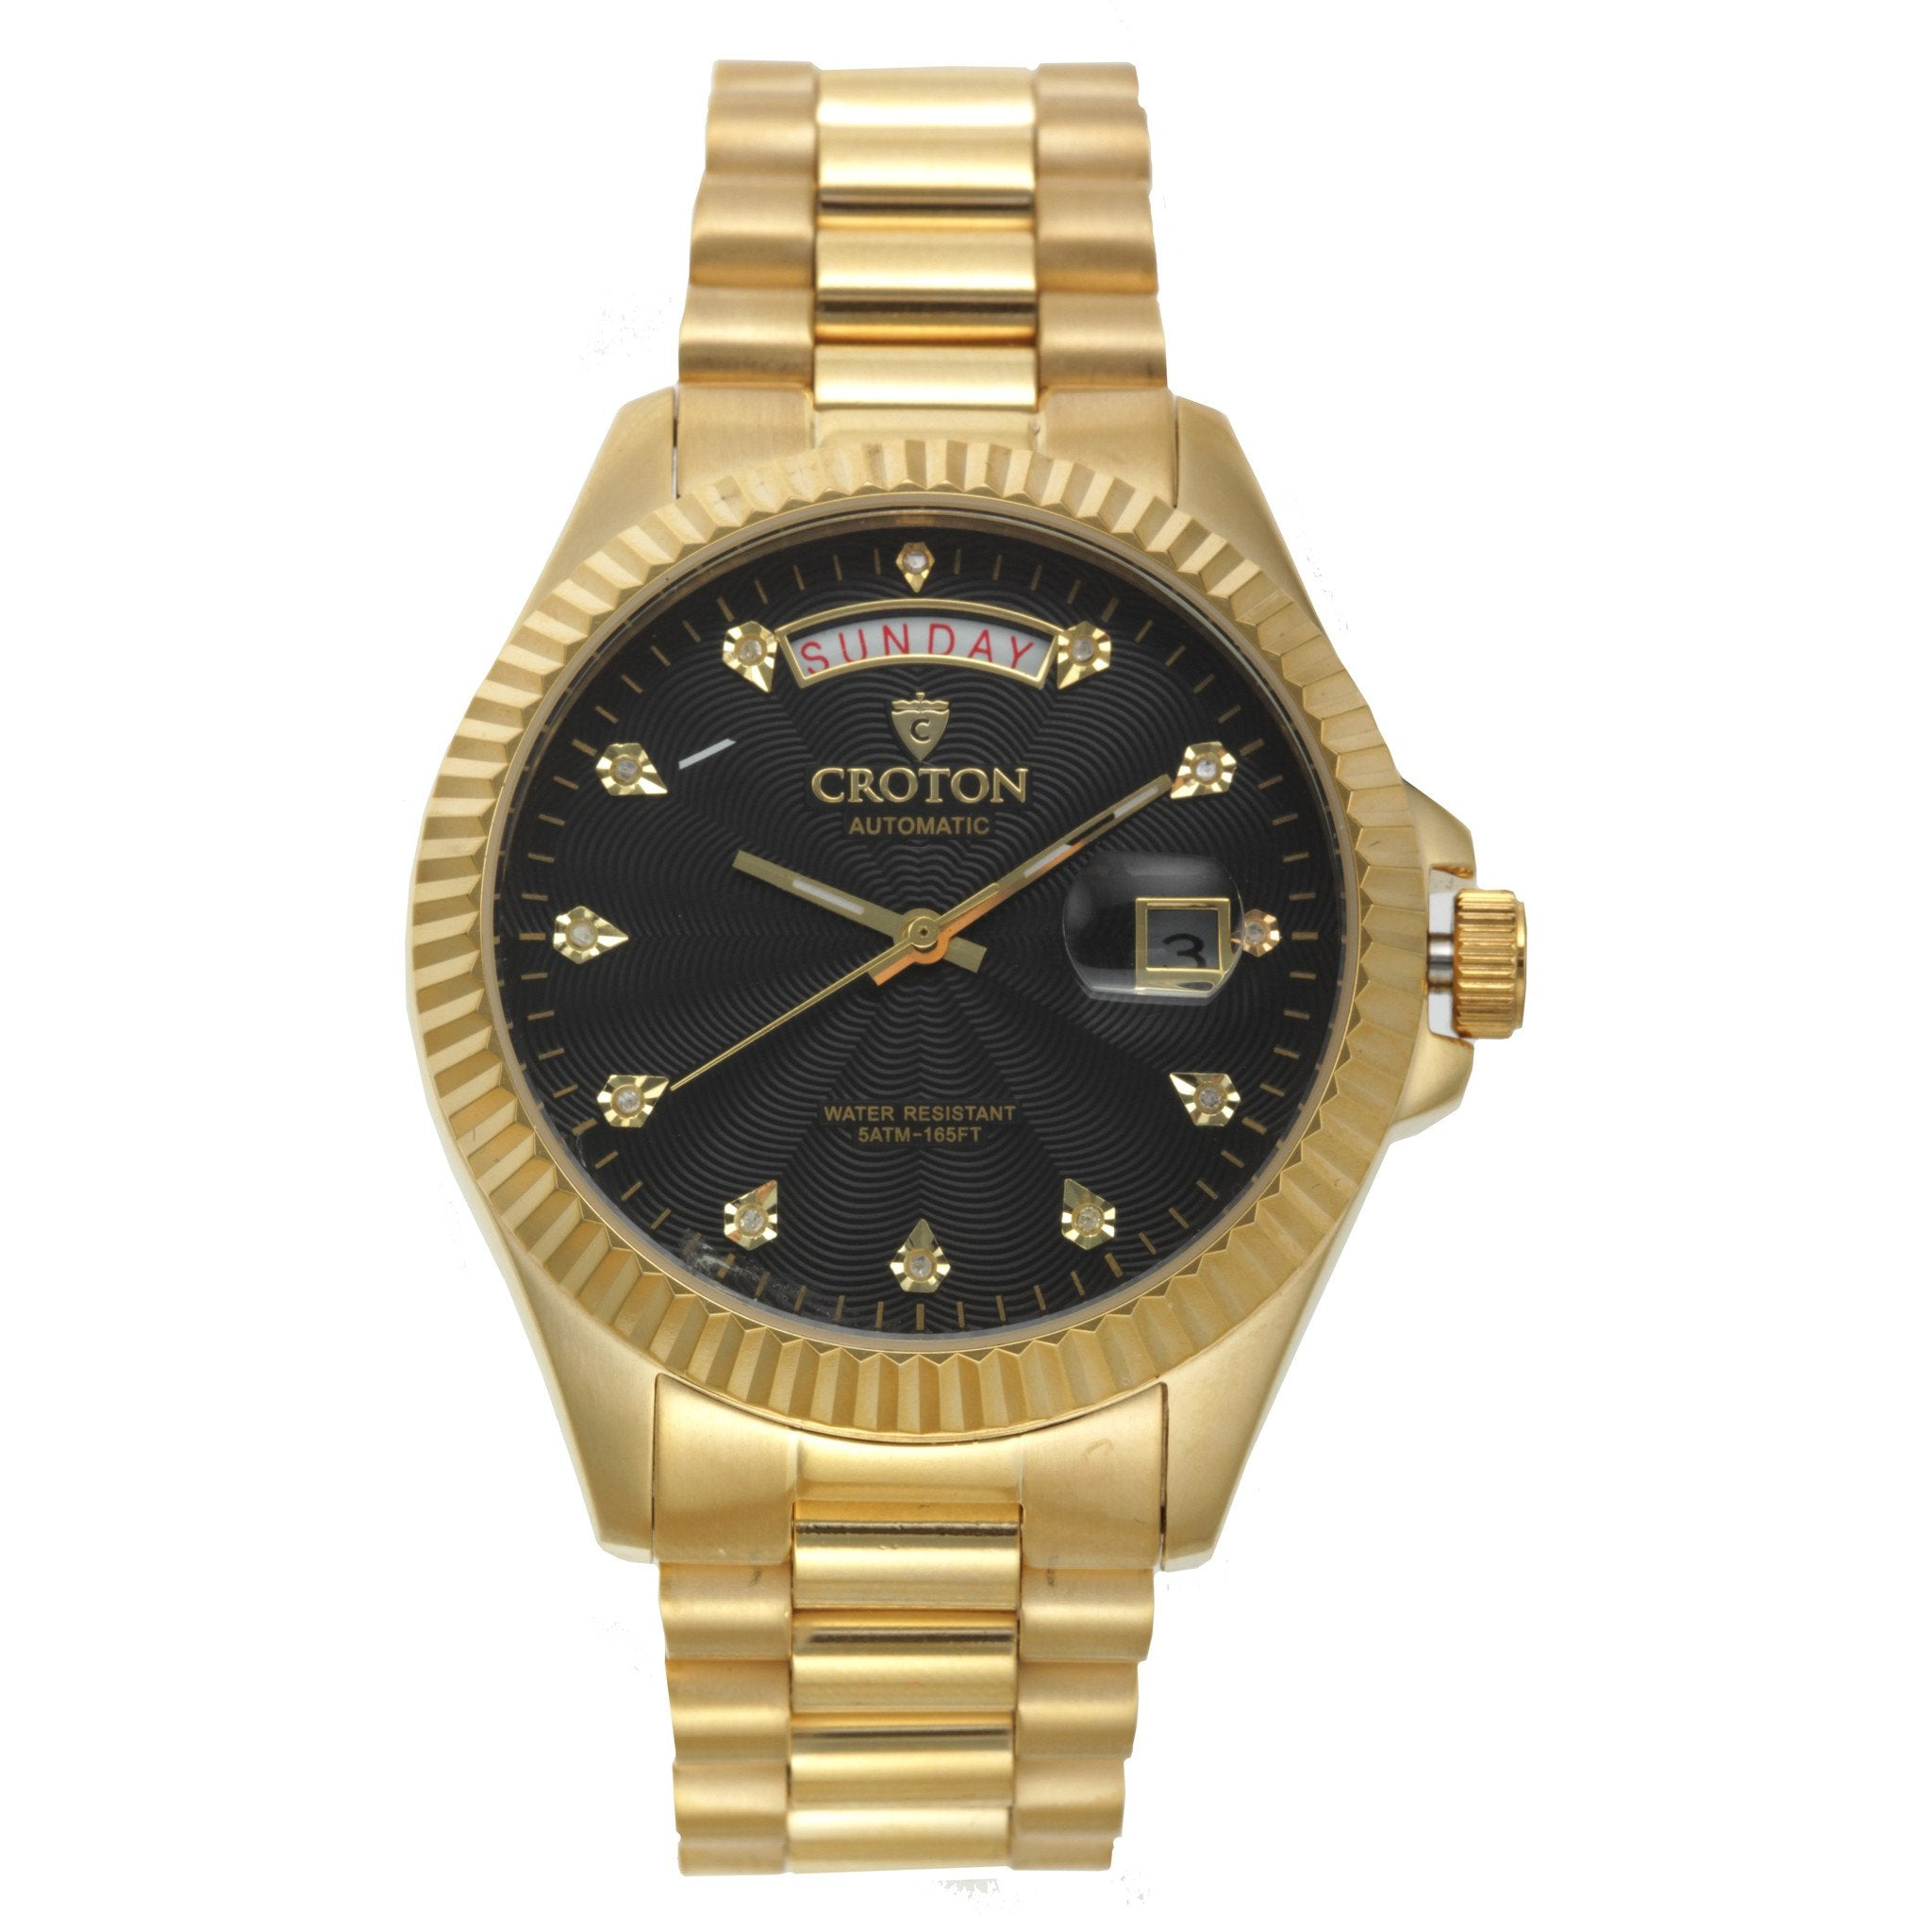 free women s watches jbw diamond today product womens watch mondrian overstock shipping goldplated jewelry